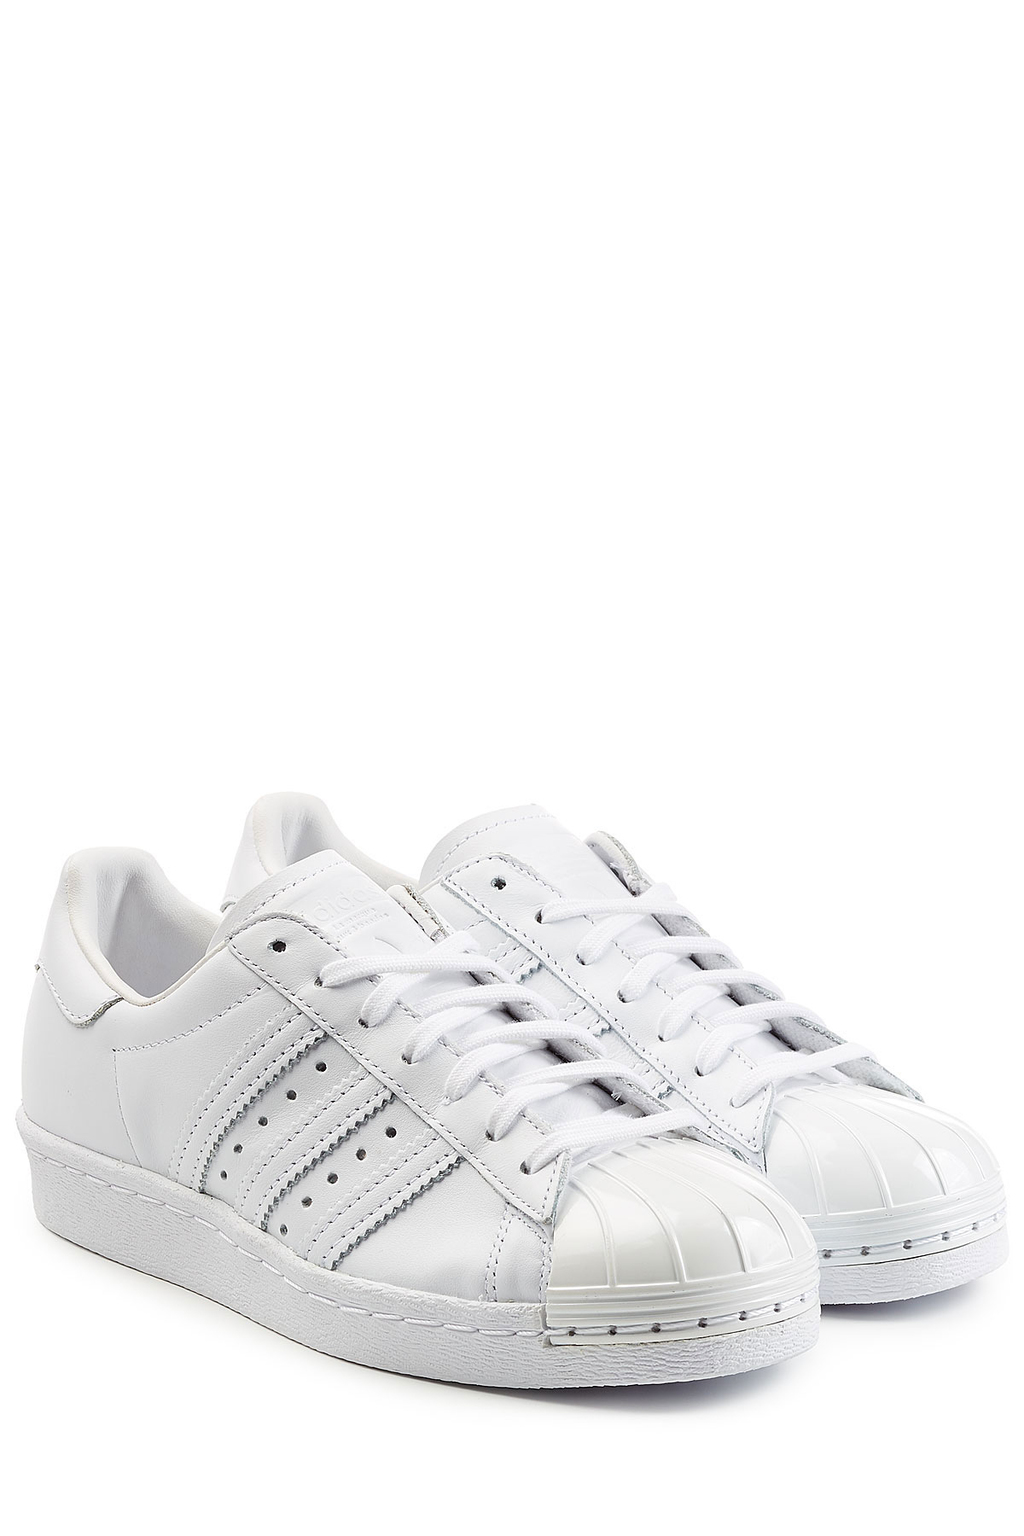 Superstar Leather Sneakers - predominant colour: white; occasions: casual, activity; material: leather; heel height: flat; toe: round toe; style: trainers; finish: plain; pattern: plain; season: a/w 2016